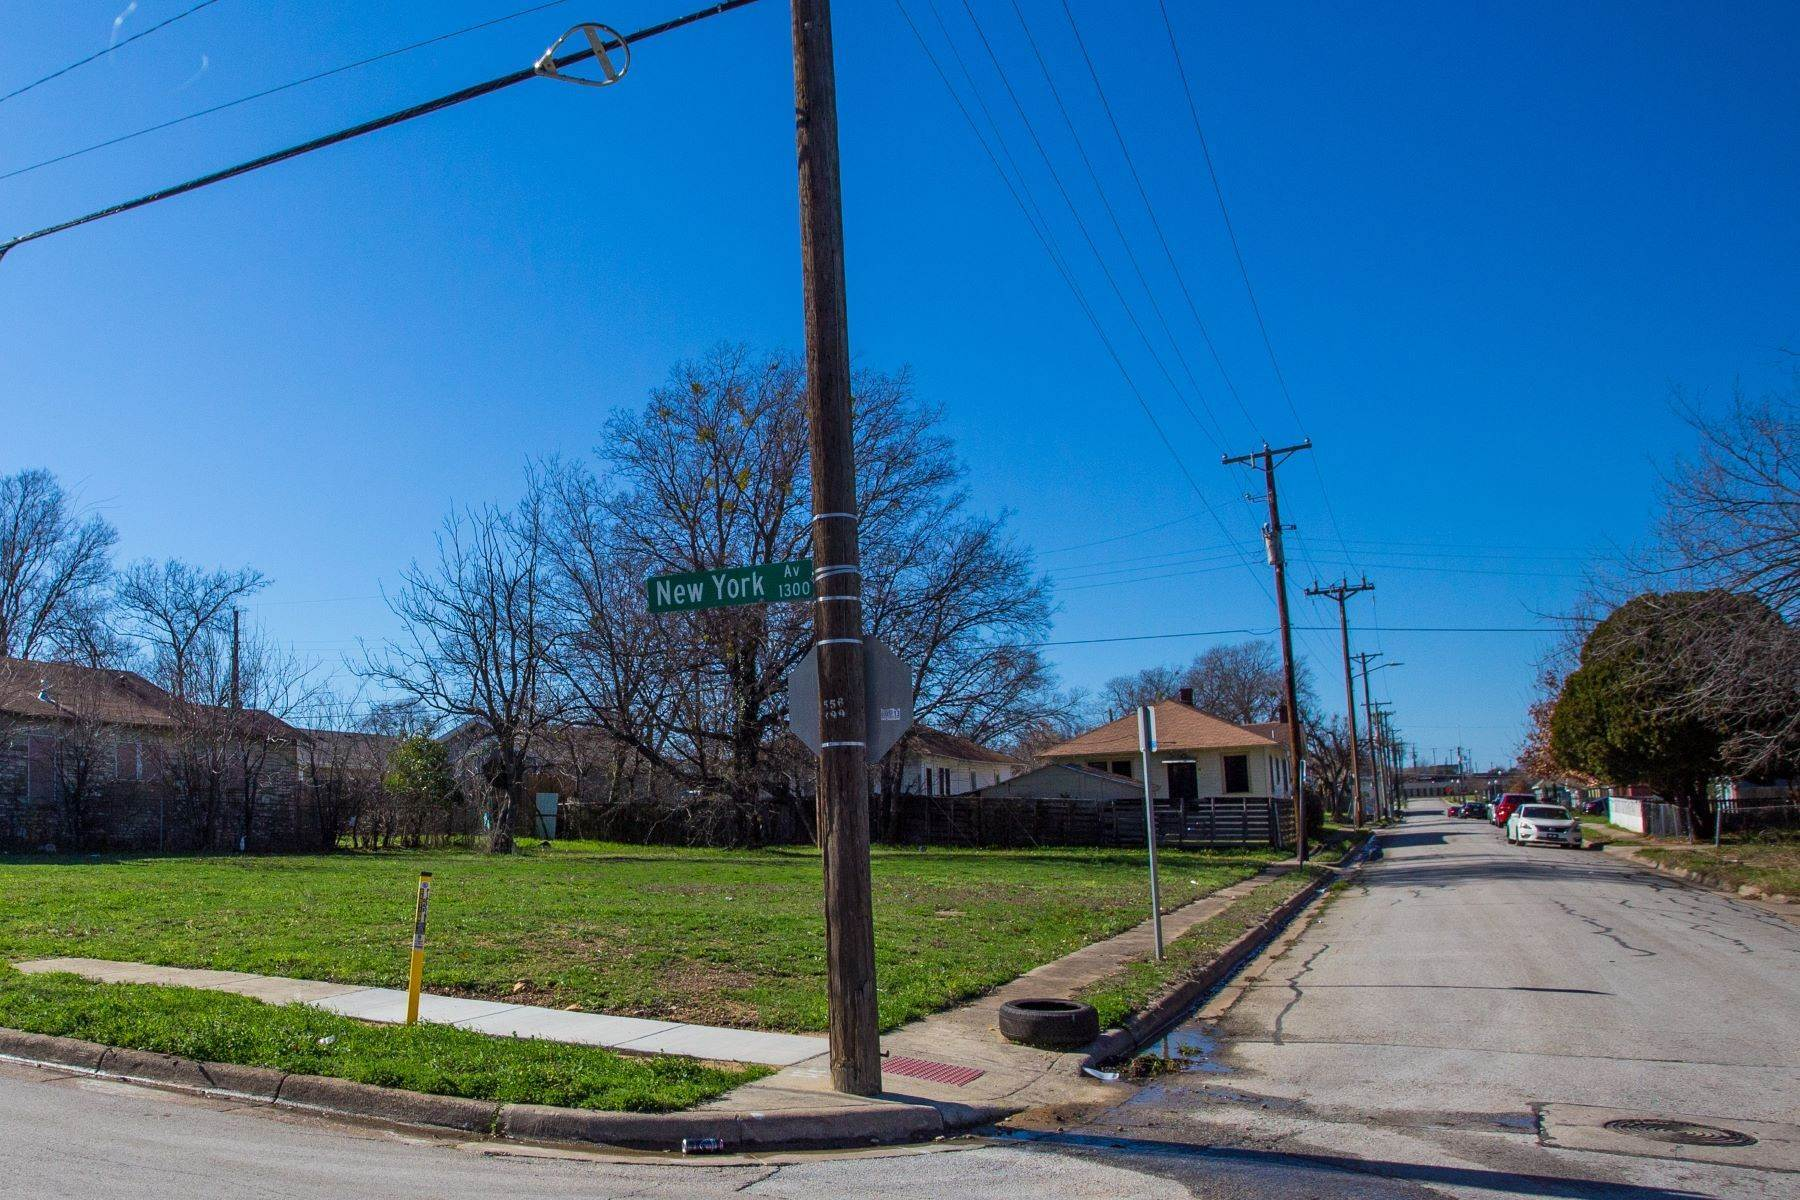 18. Land for Sale at Build your dream home on this over-sized lot 1300 New York Avenue Fort Worth, Texas 76104 United States